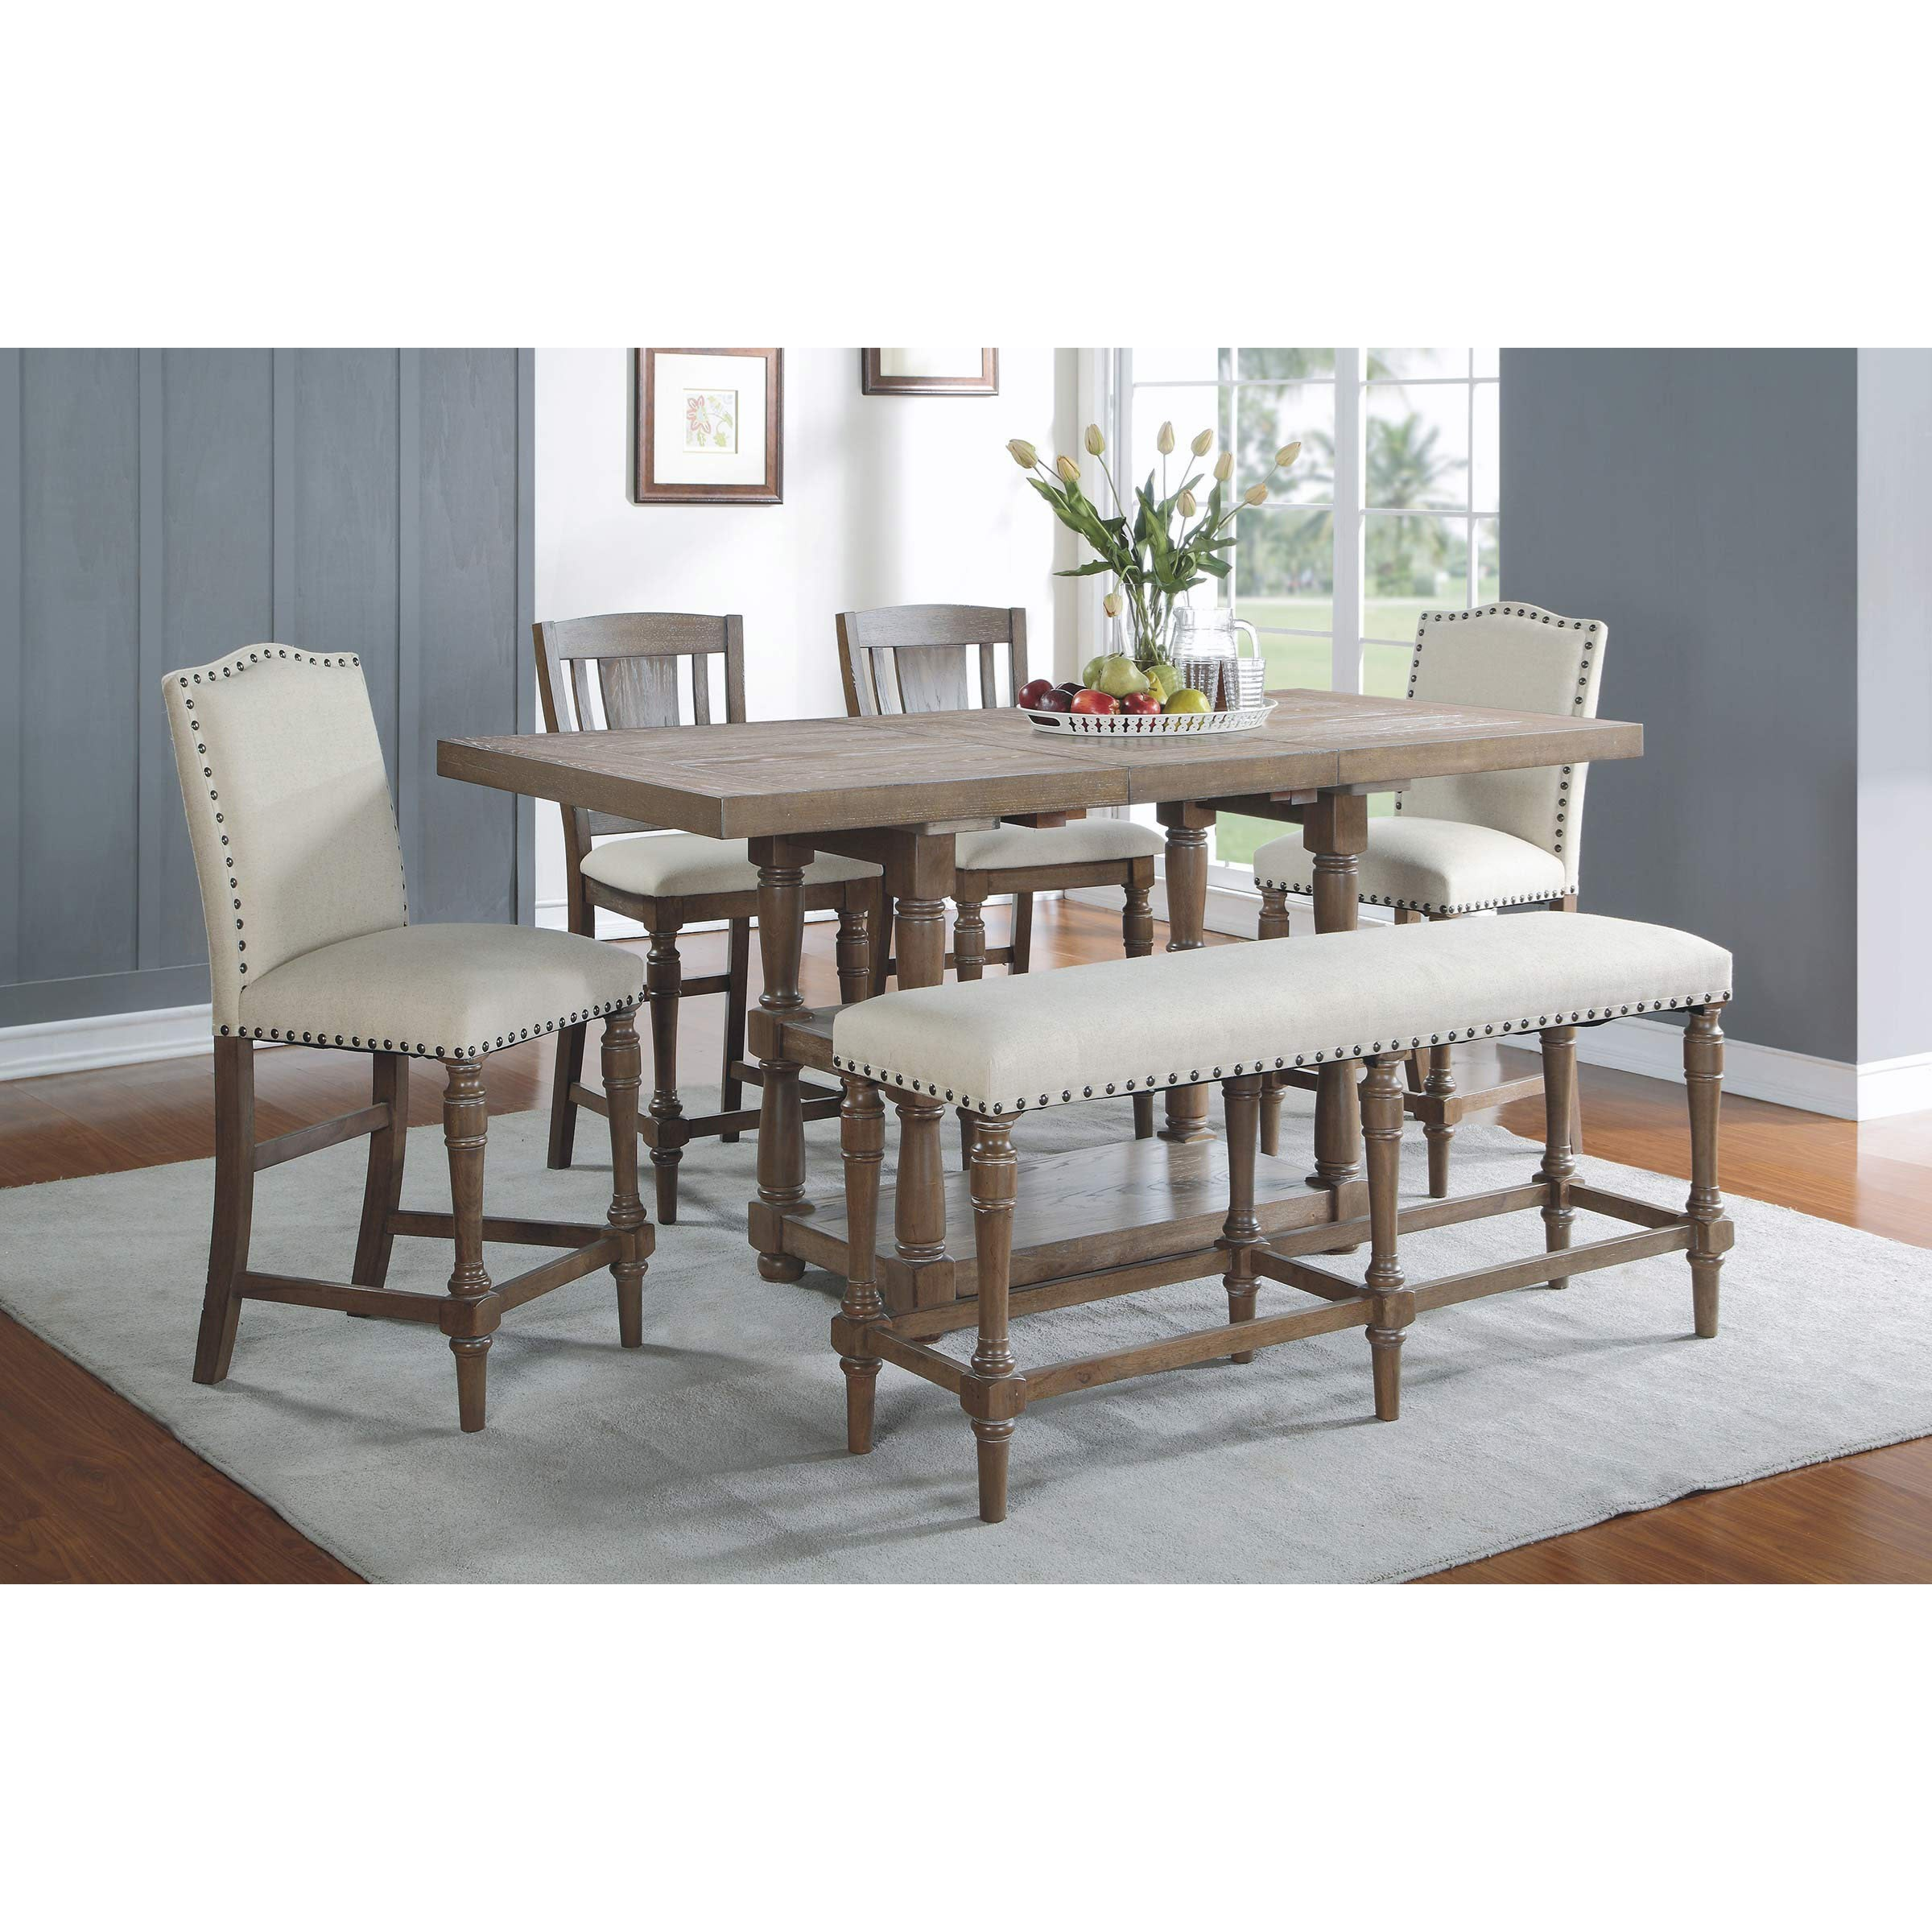 Xcalibur Counter Height Dining Set by Winners Only at Turk Furniture